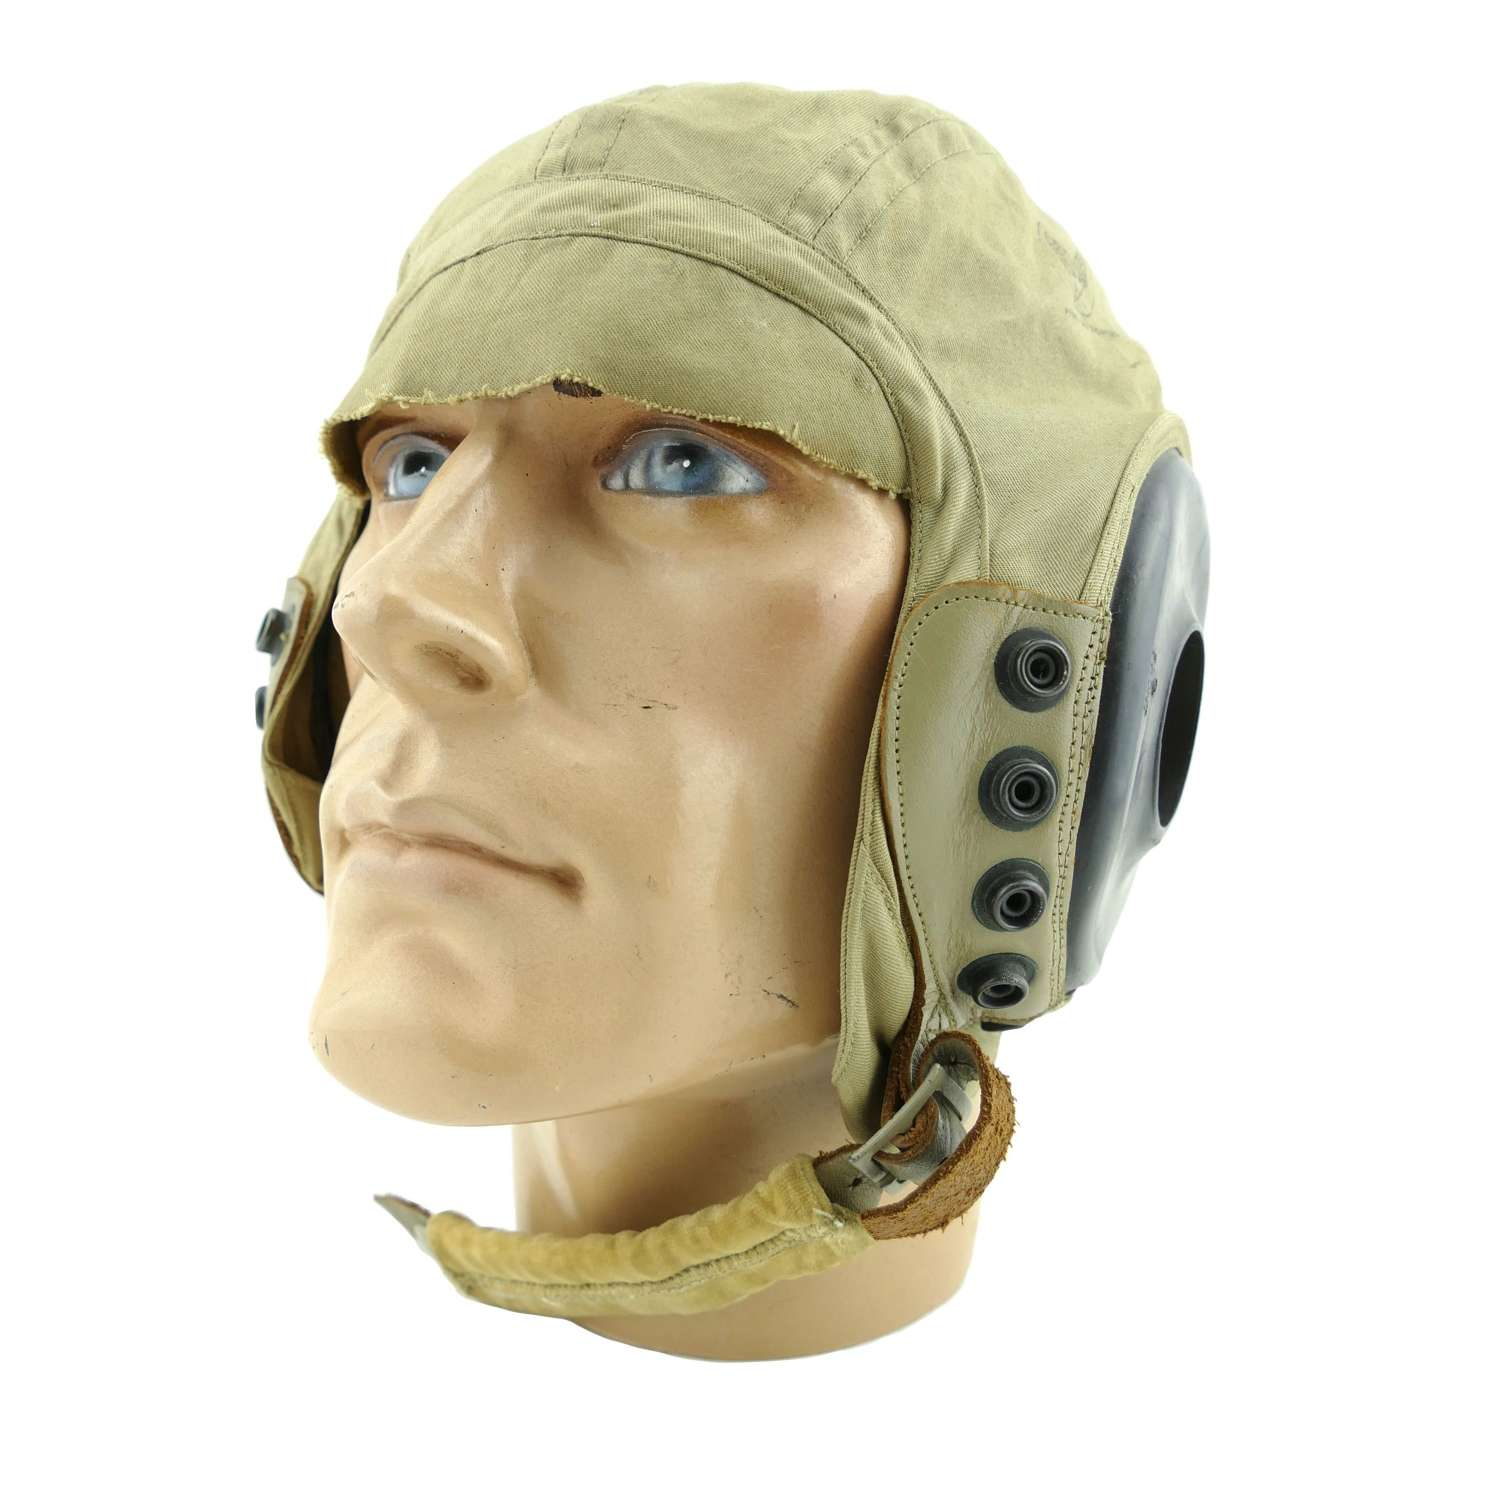 USAAF AN-H-15 intermediate flying helmet